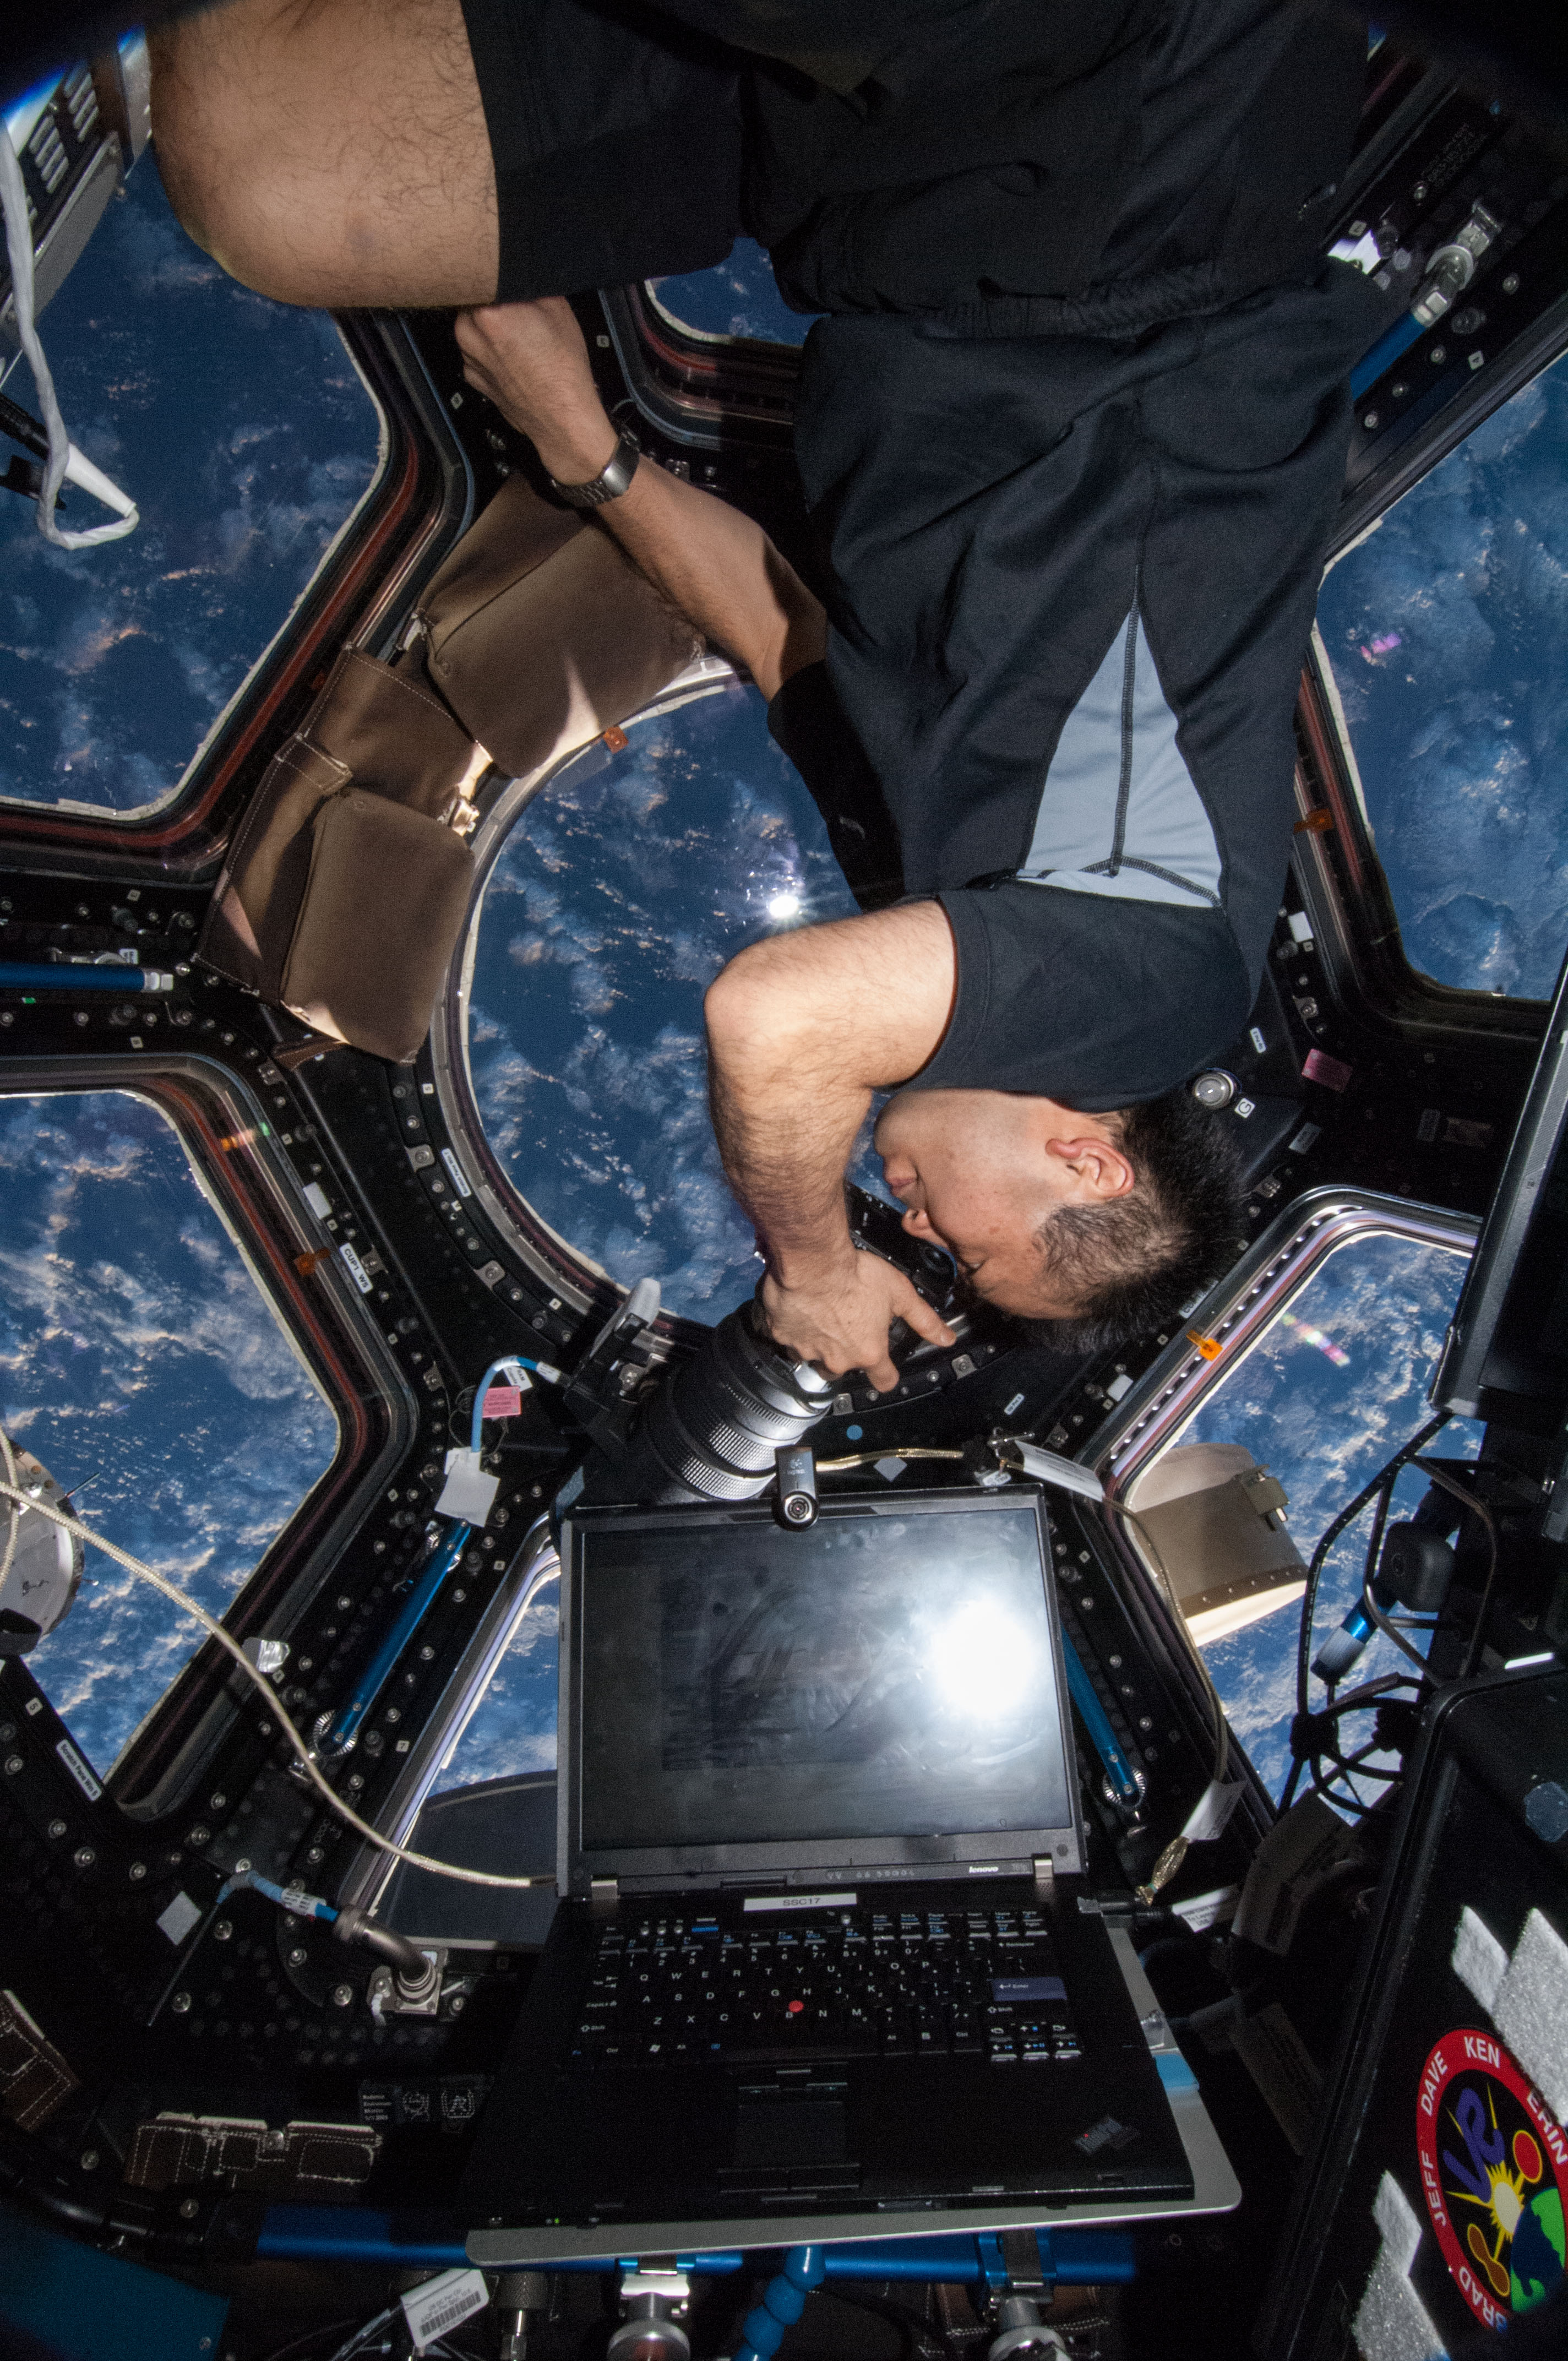 Iss International Space Station Cupola